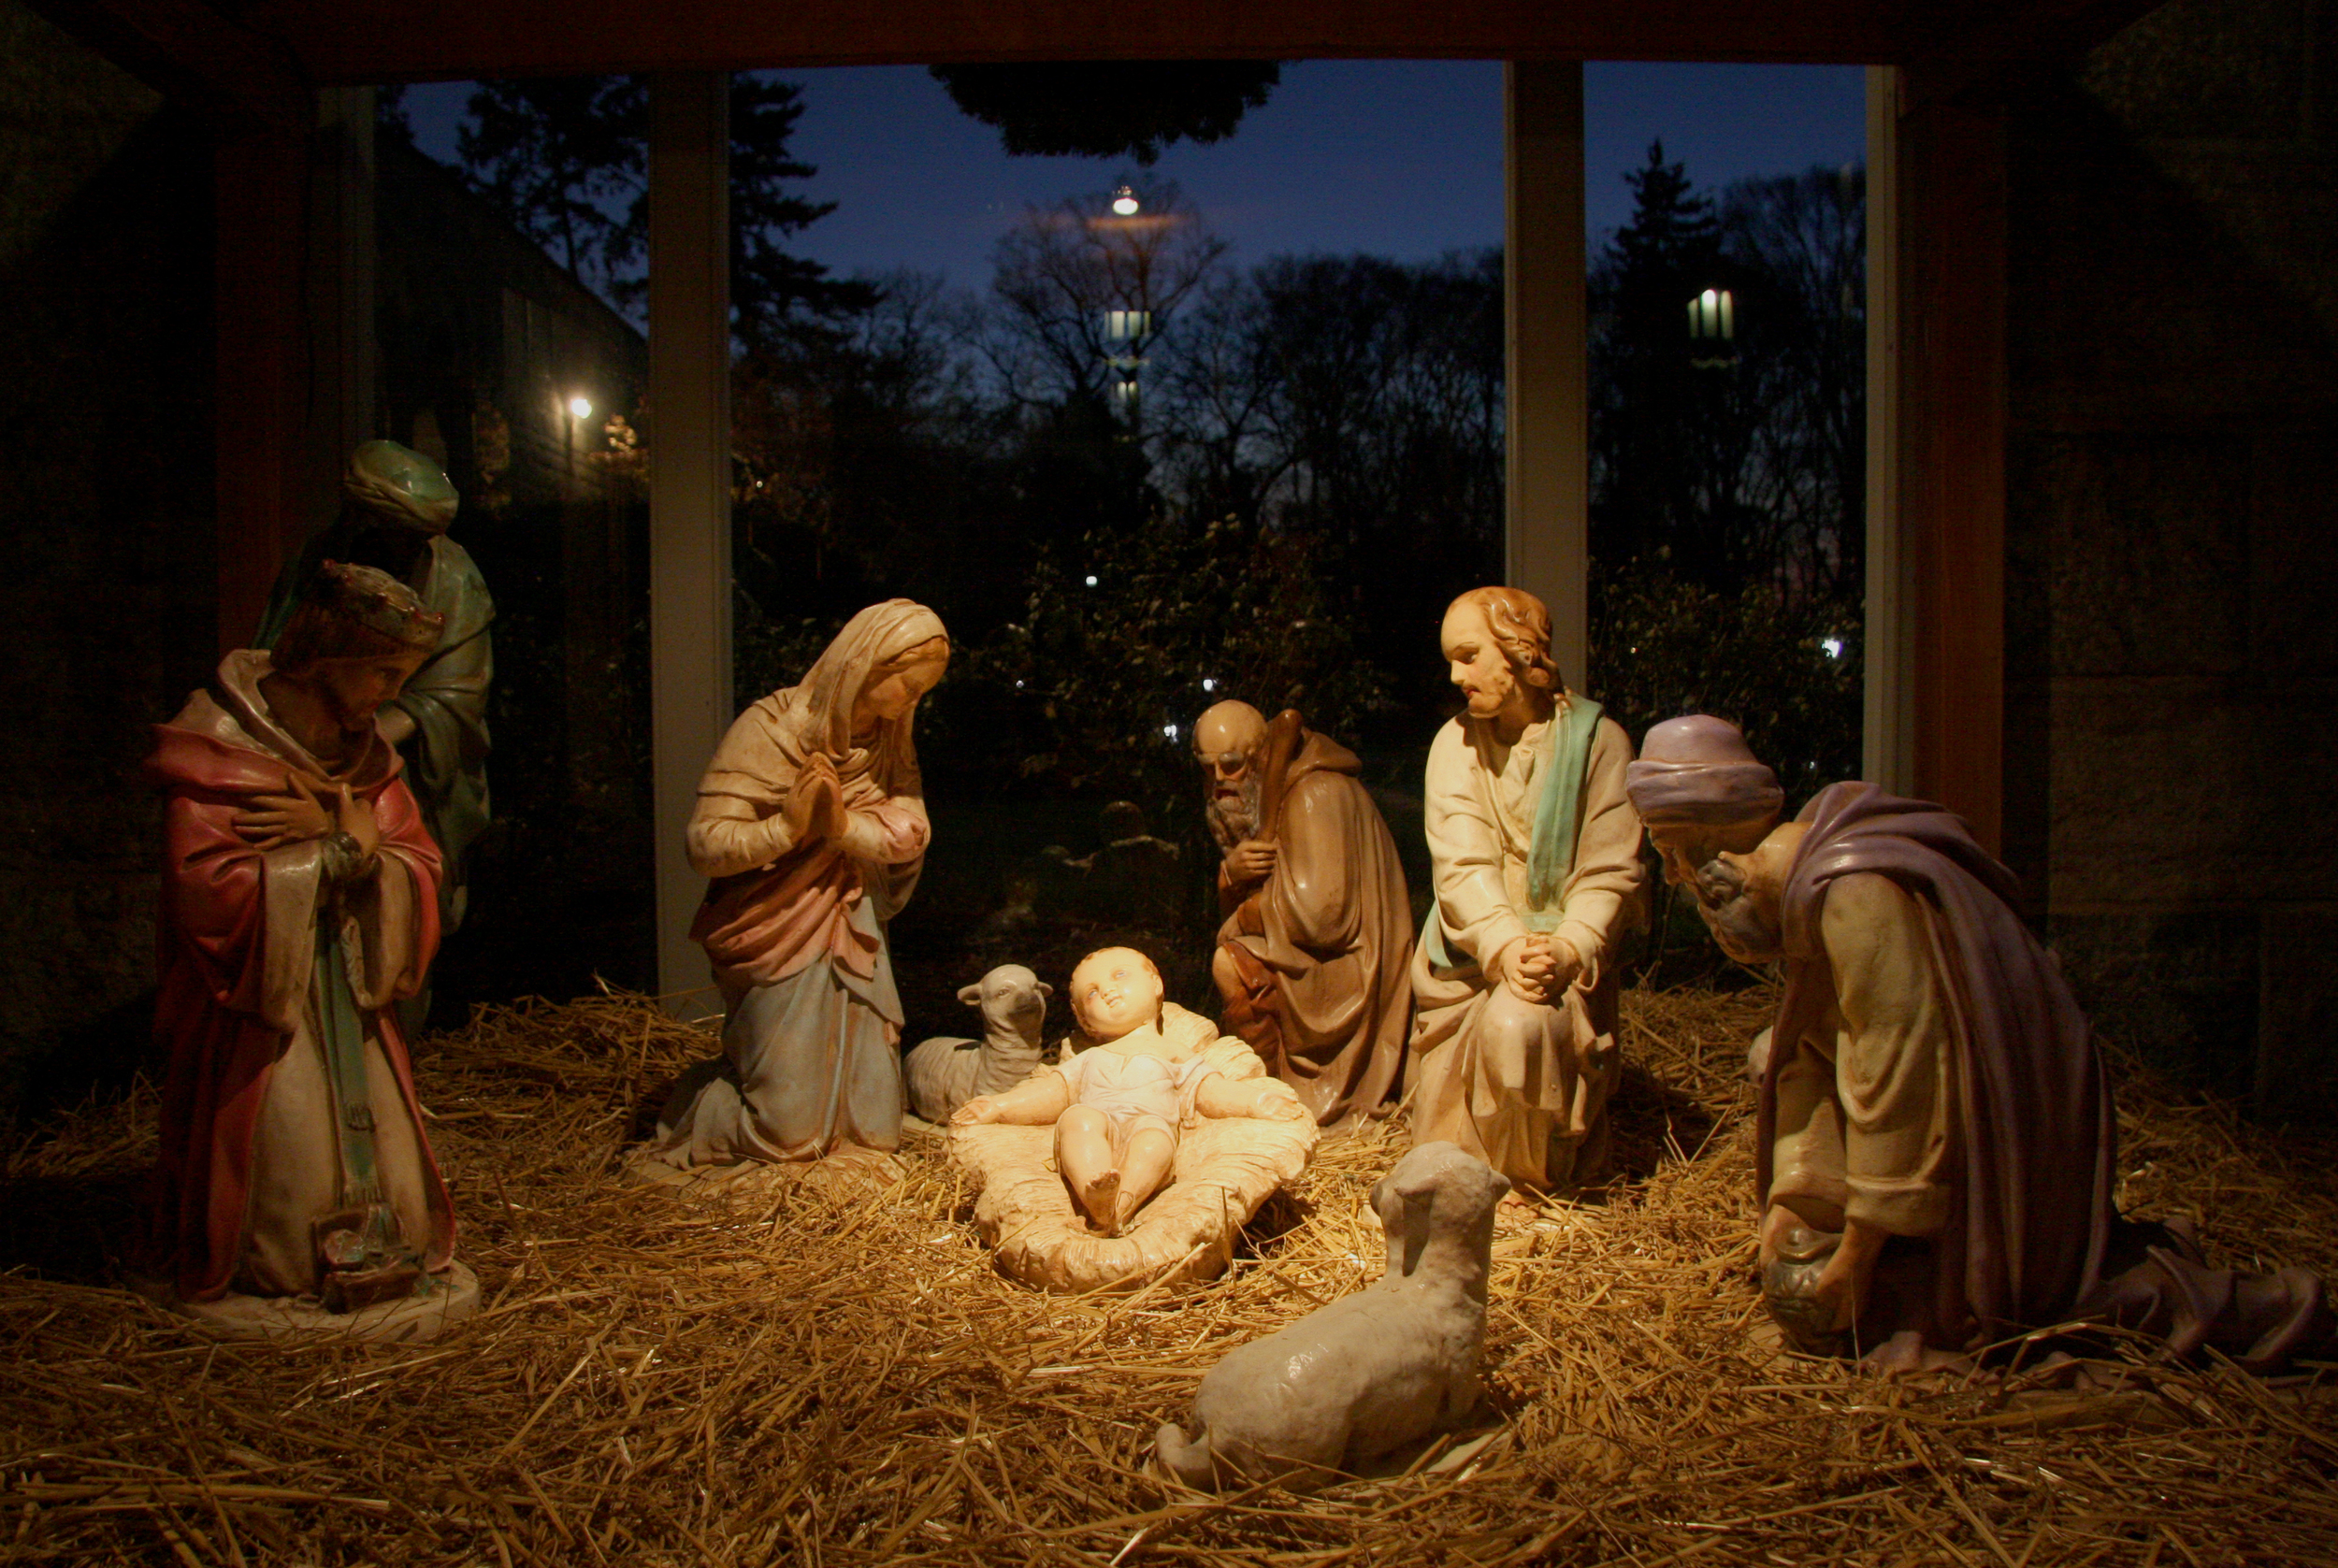 Figure 8: This large cast-stone Nativity was purchased by Antonio Morales in the 1970s from a Roman Catholic Church in Boston, Massachusetts. Each year, during the first week of December, Morales built a wooden stable for the figures on the family's front porch. For forty years he and his sons carried the large figures—which together weigh approximately half a ton—up the stairs from the basement.